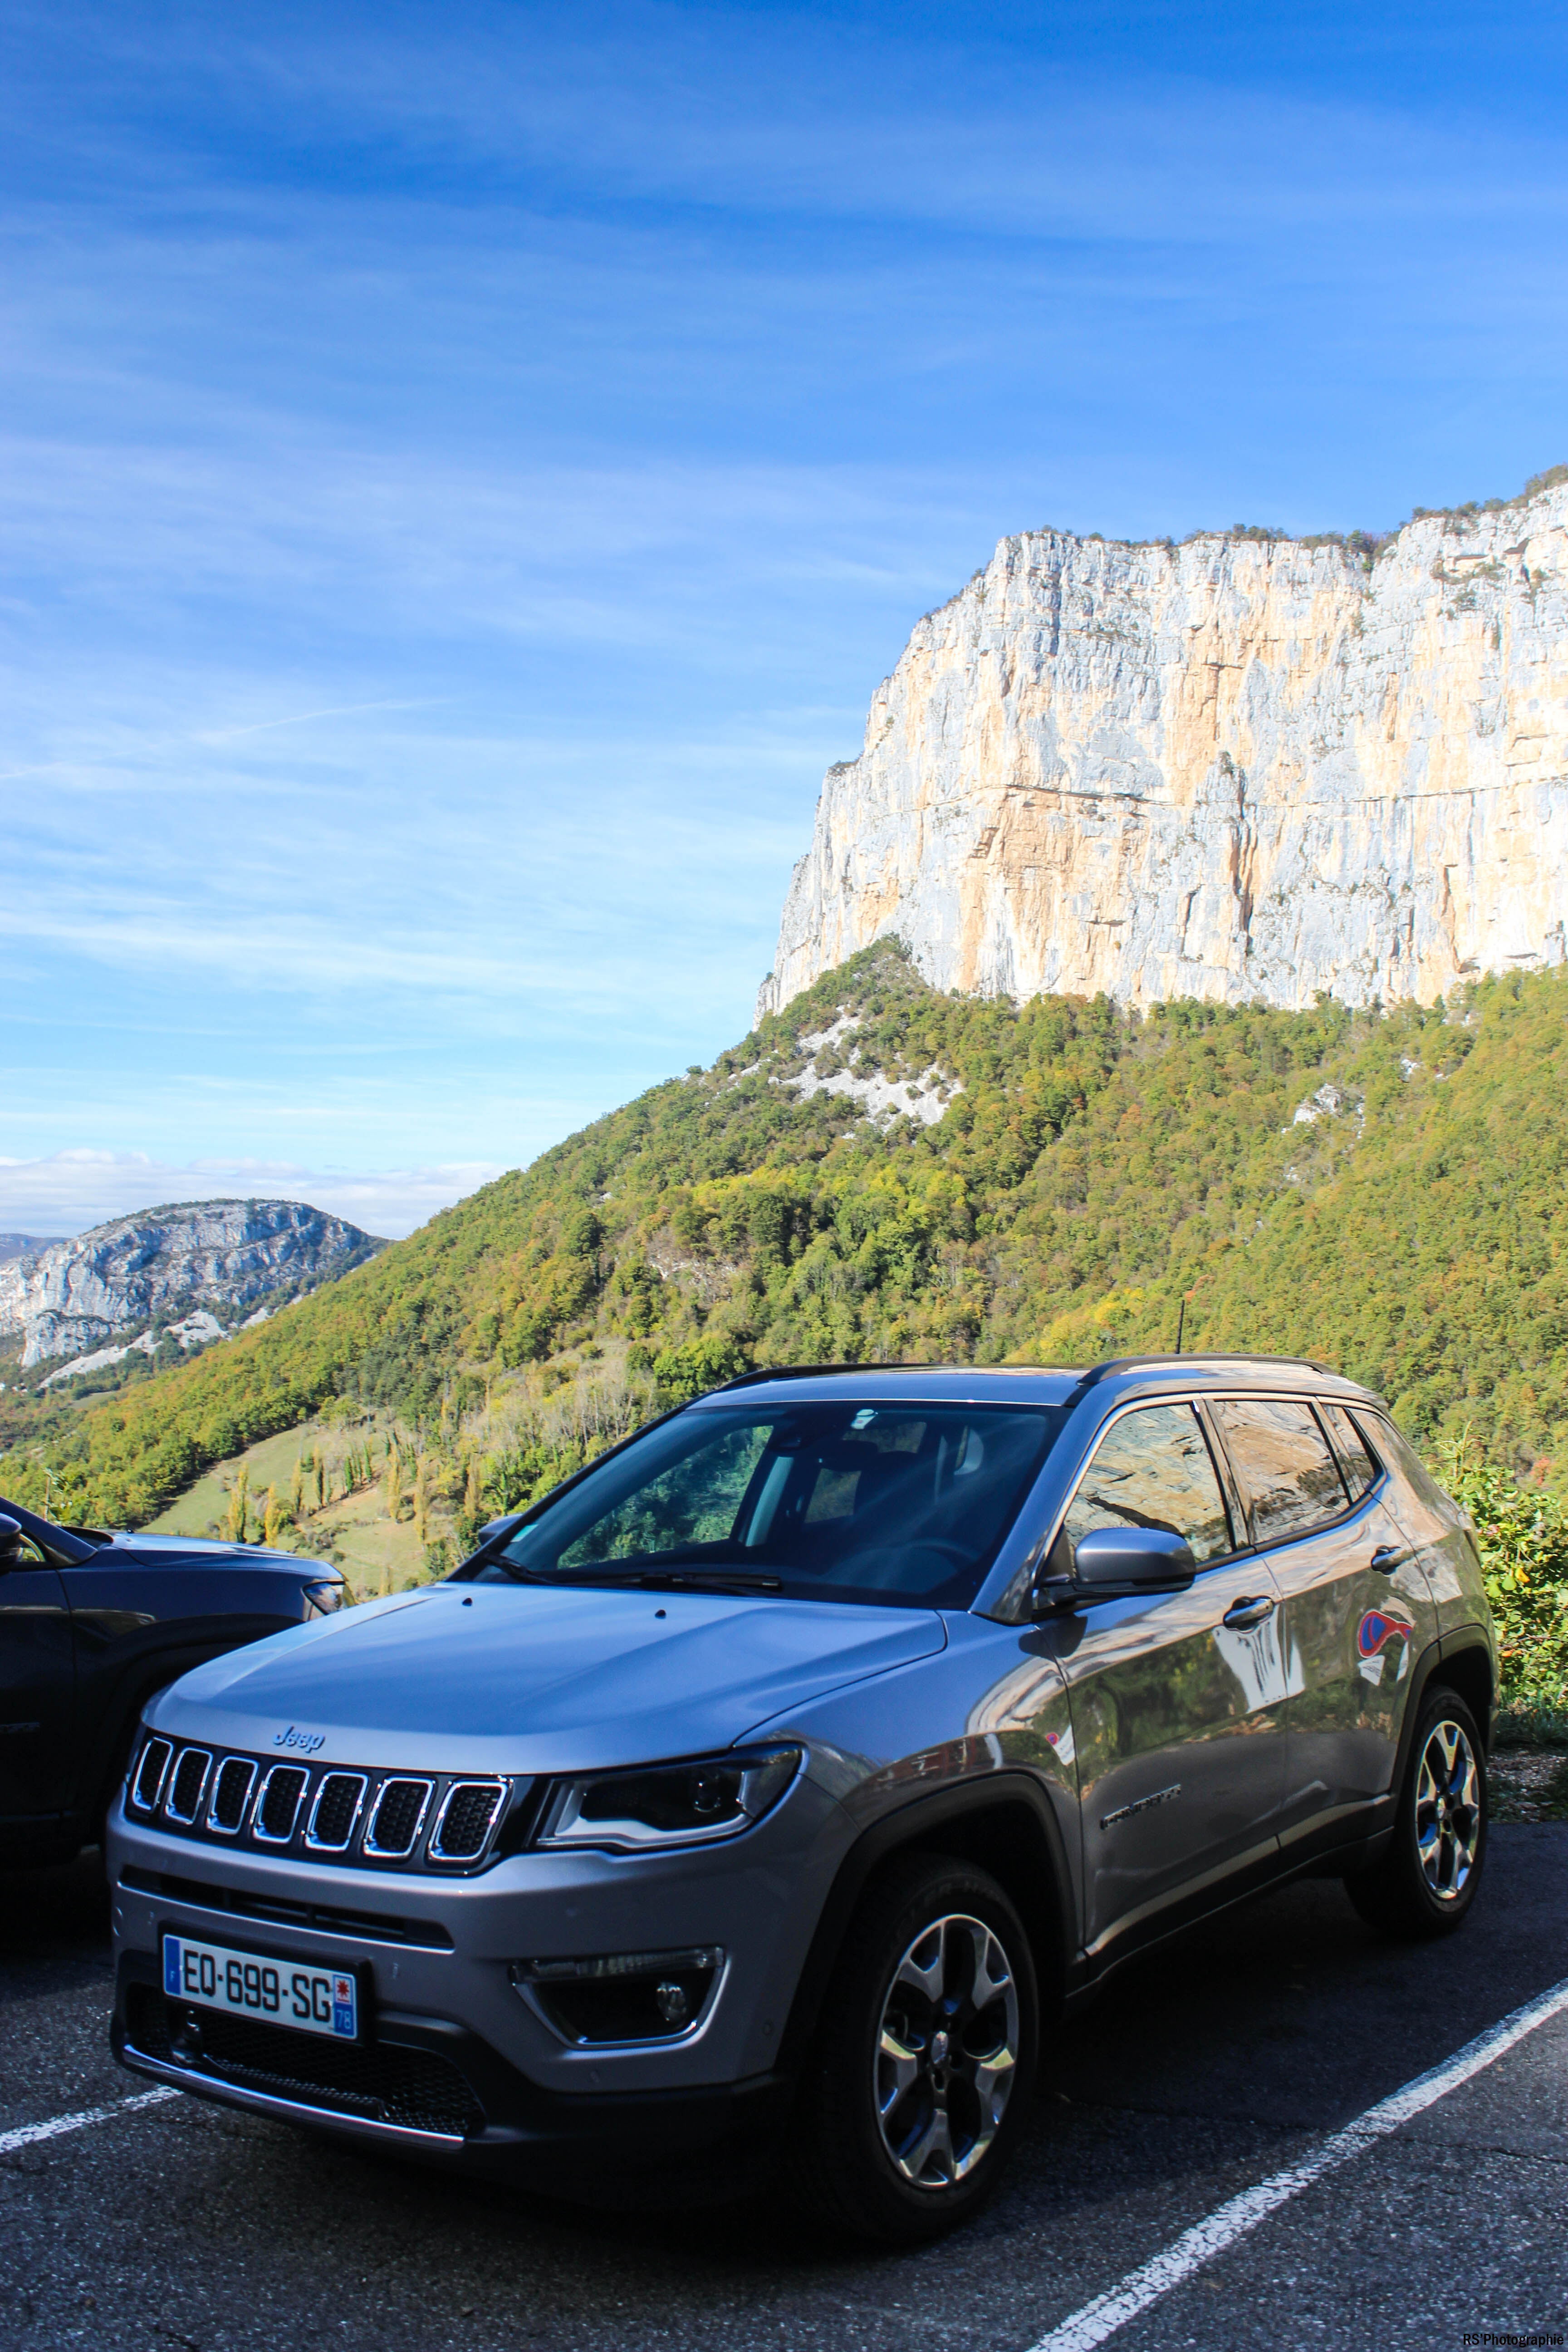 jeepcompass14-jeep-compass-avant-front-Arnaud Demasier-RSPhotographie